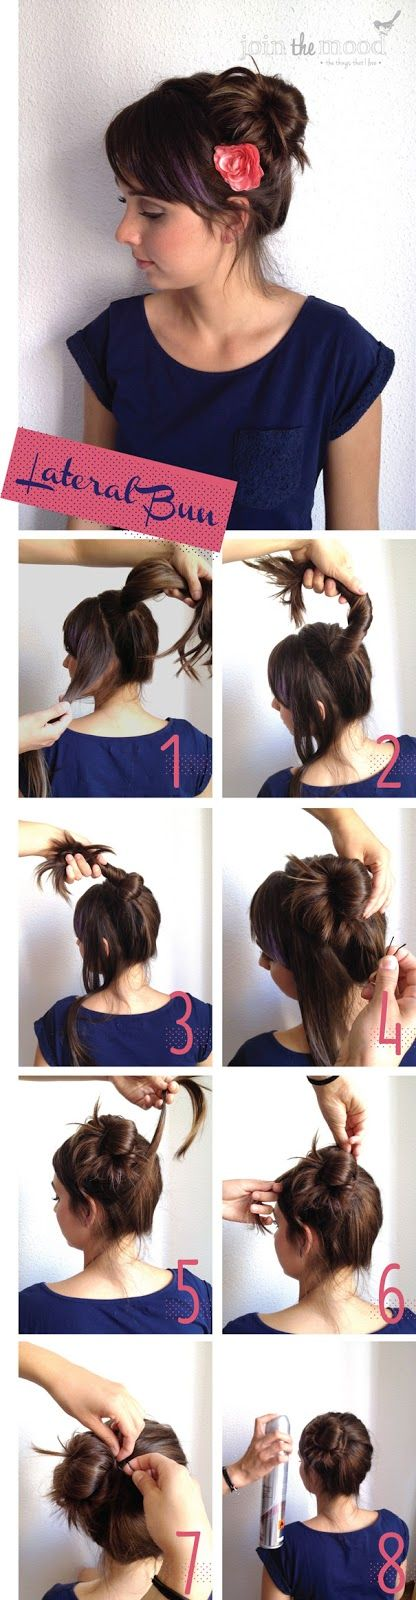 How To Make a Lateral Bun | hairstyles tutorial